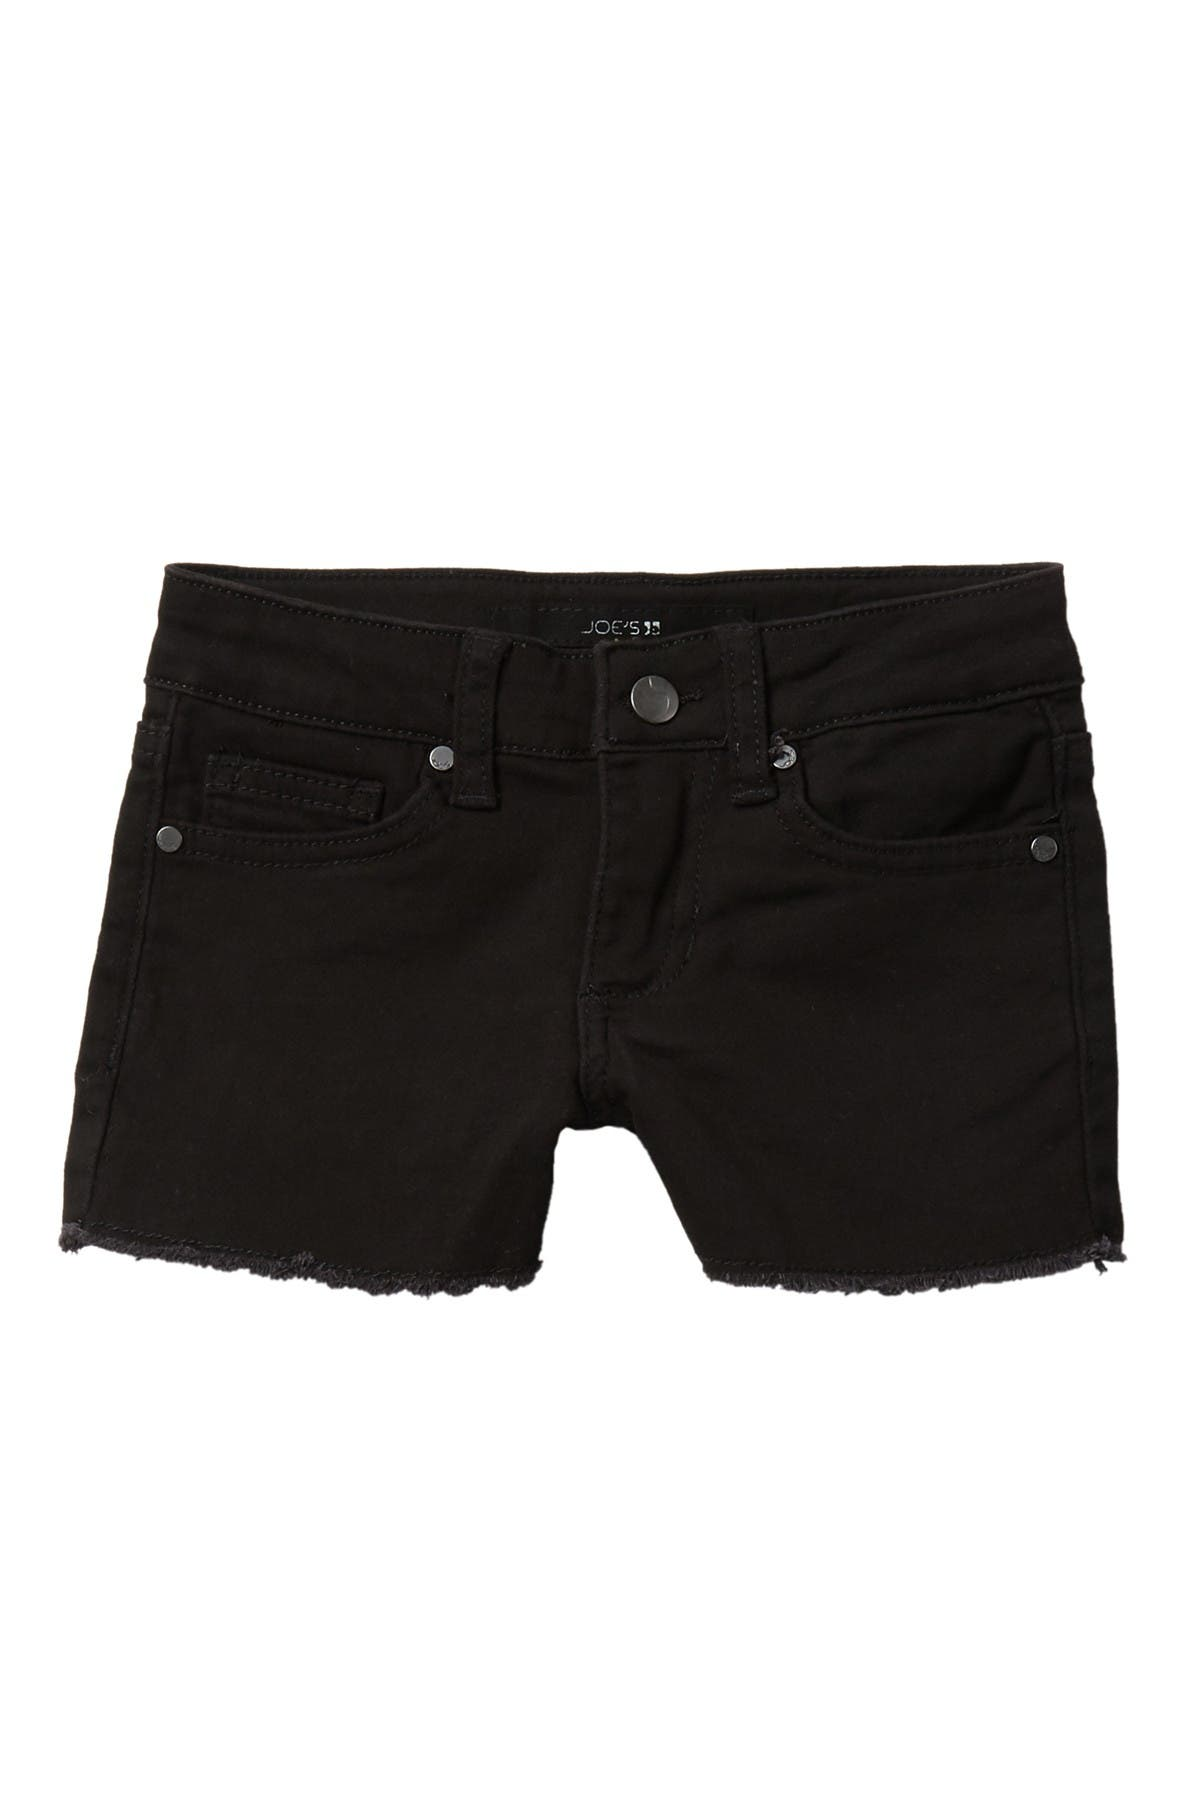 Image of Joe's Jeans Mid Rise French Terry Short